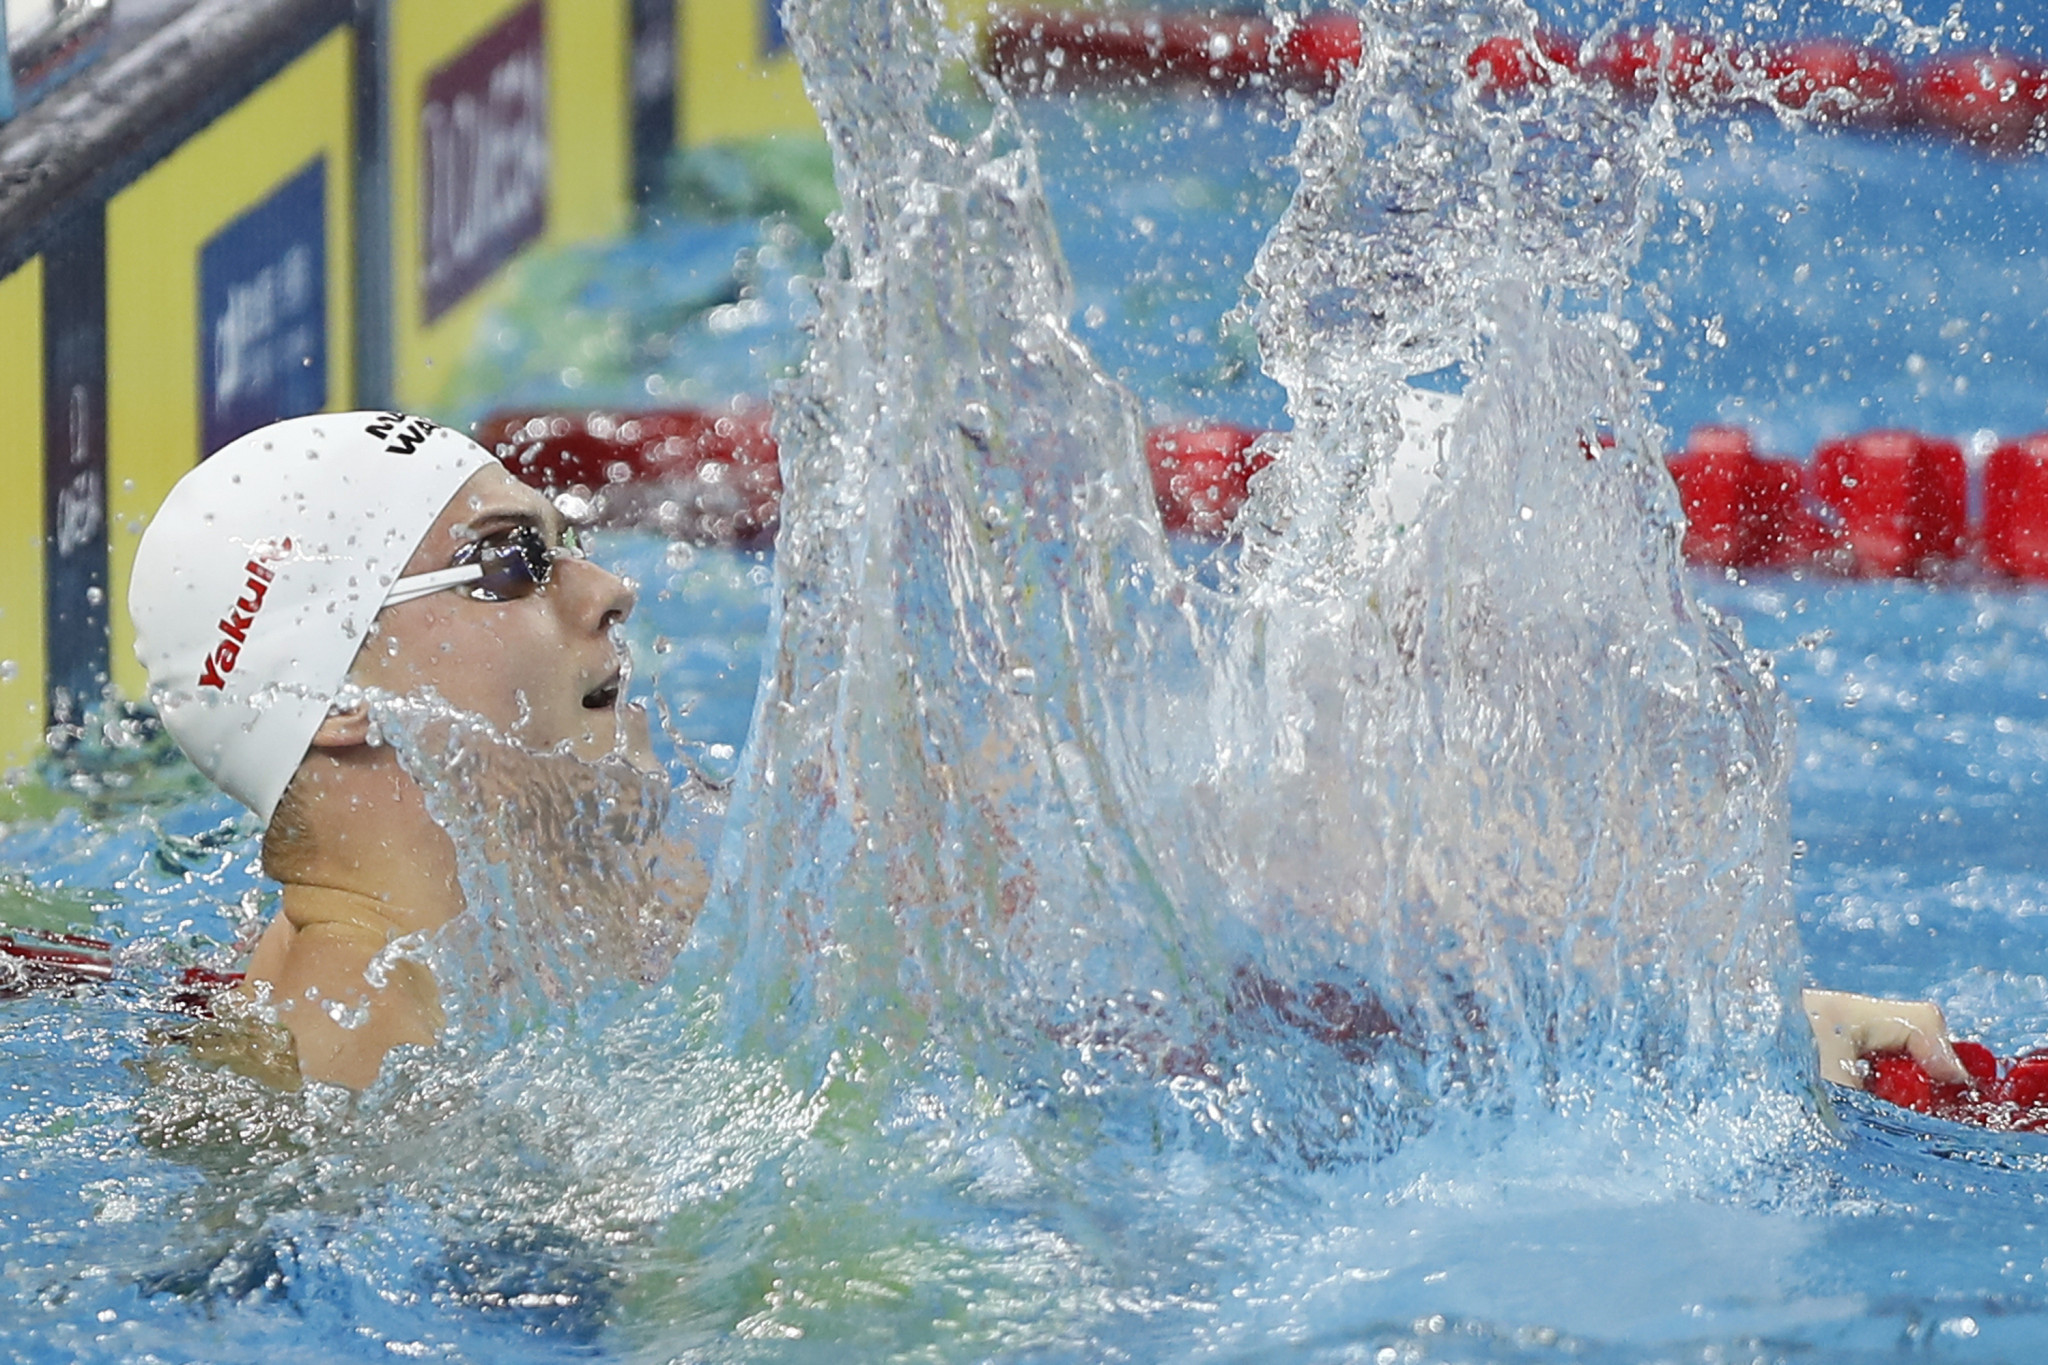 Vladimir Morozov powered to victory in the men's 50m freestyle event ©Getty Images